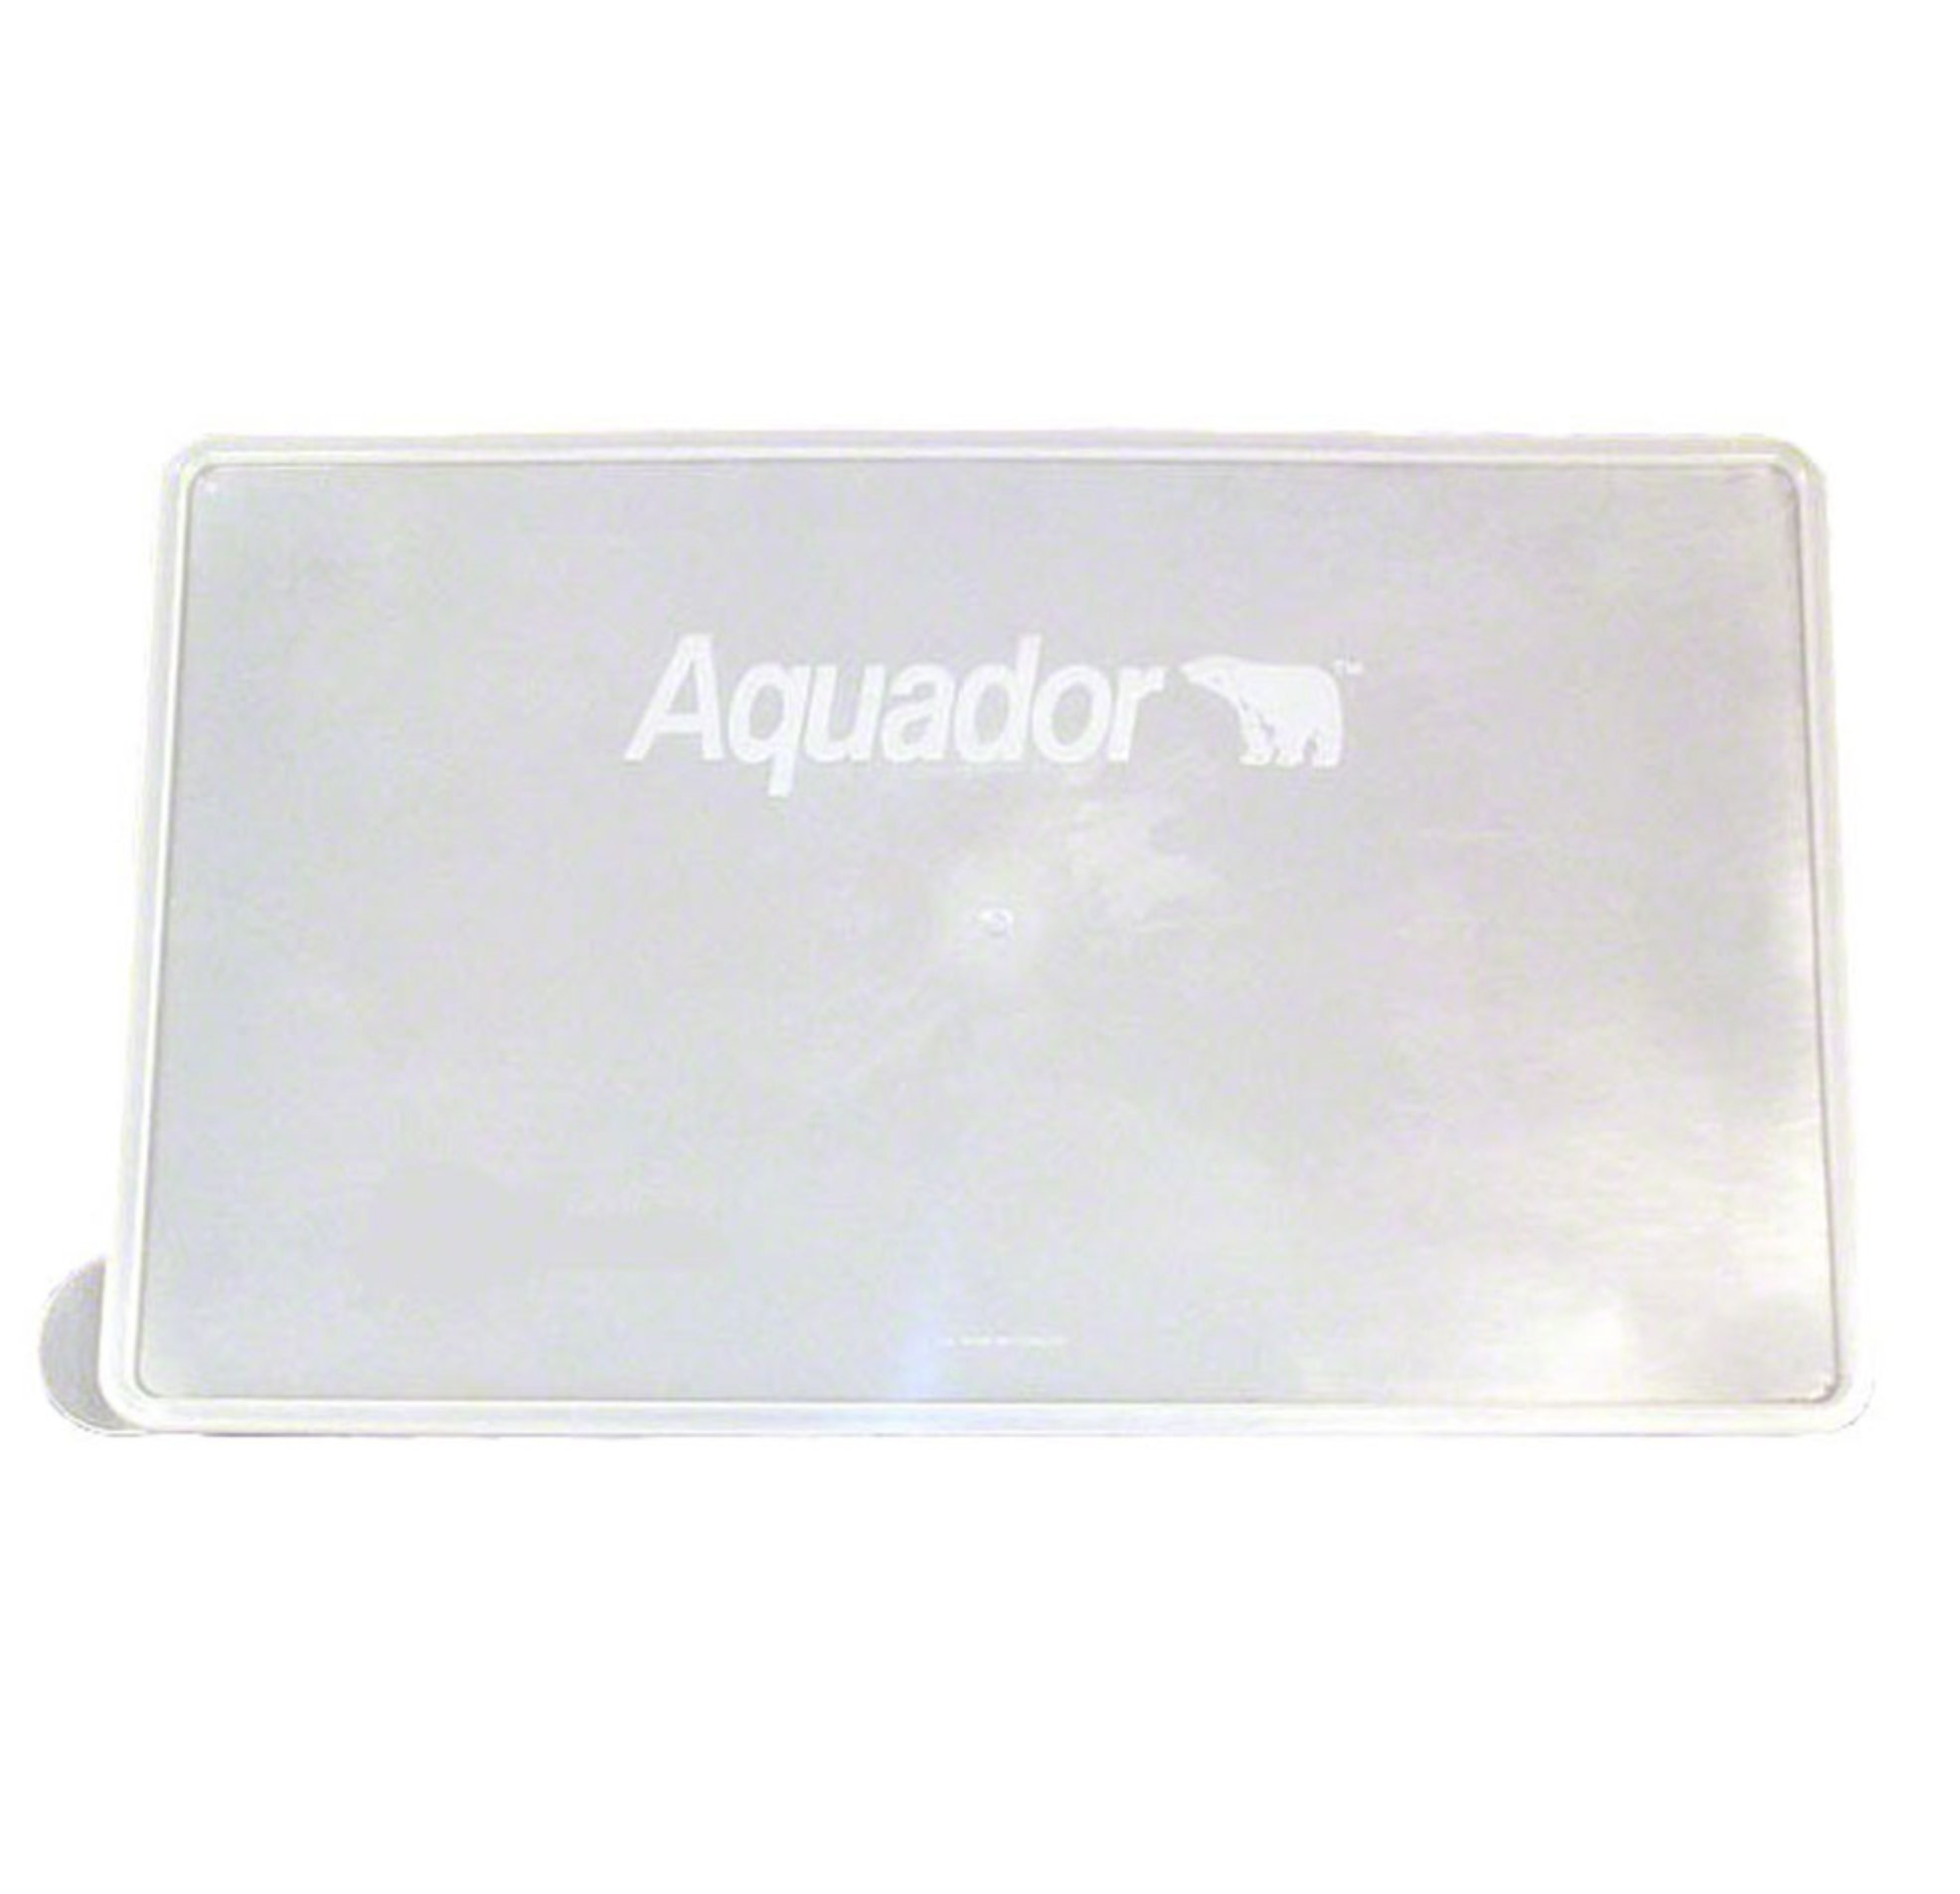 Aquador Widemouth Above Ground Pool Skimmer Cover - Replacement Lid Only - 1010 by Aquador